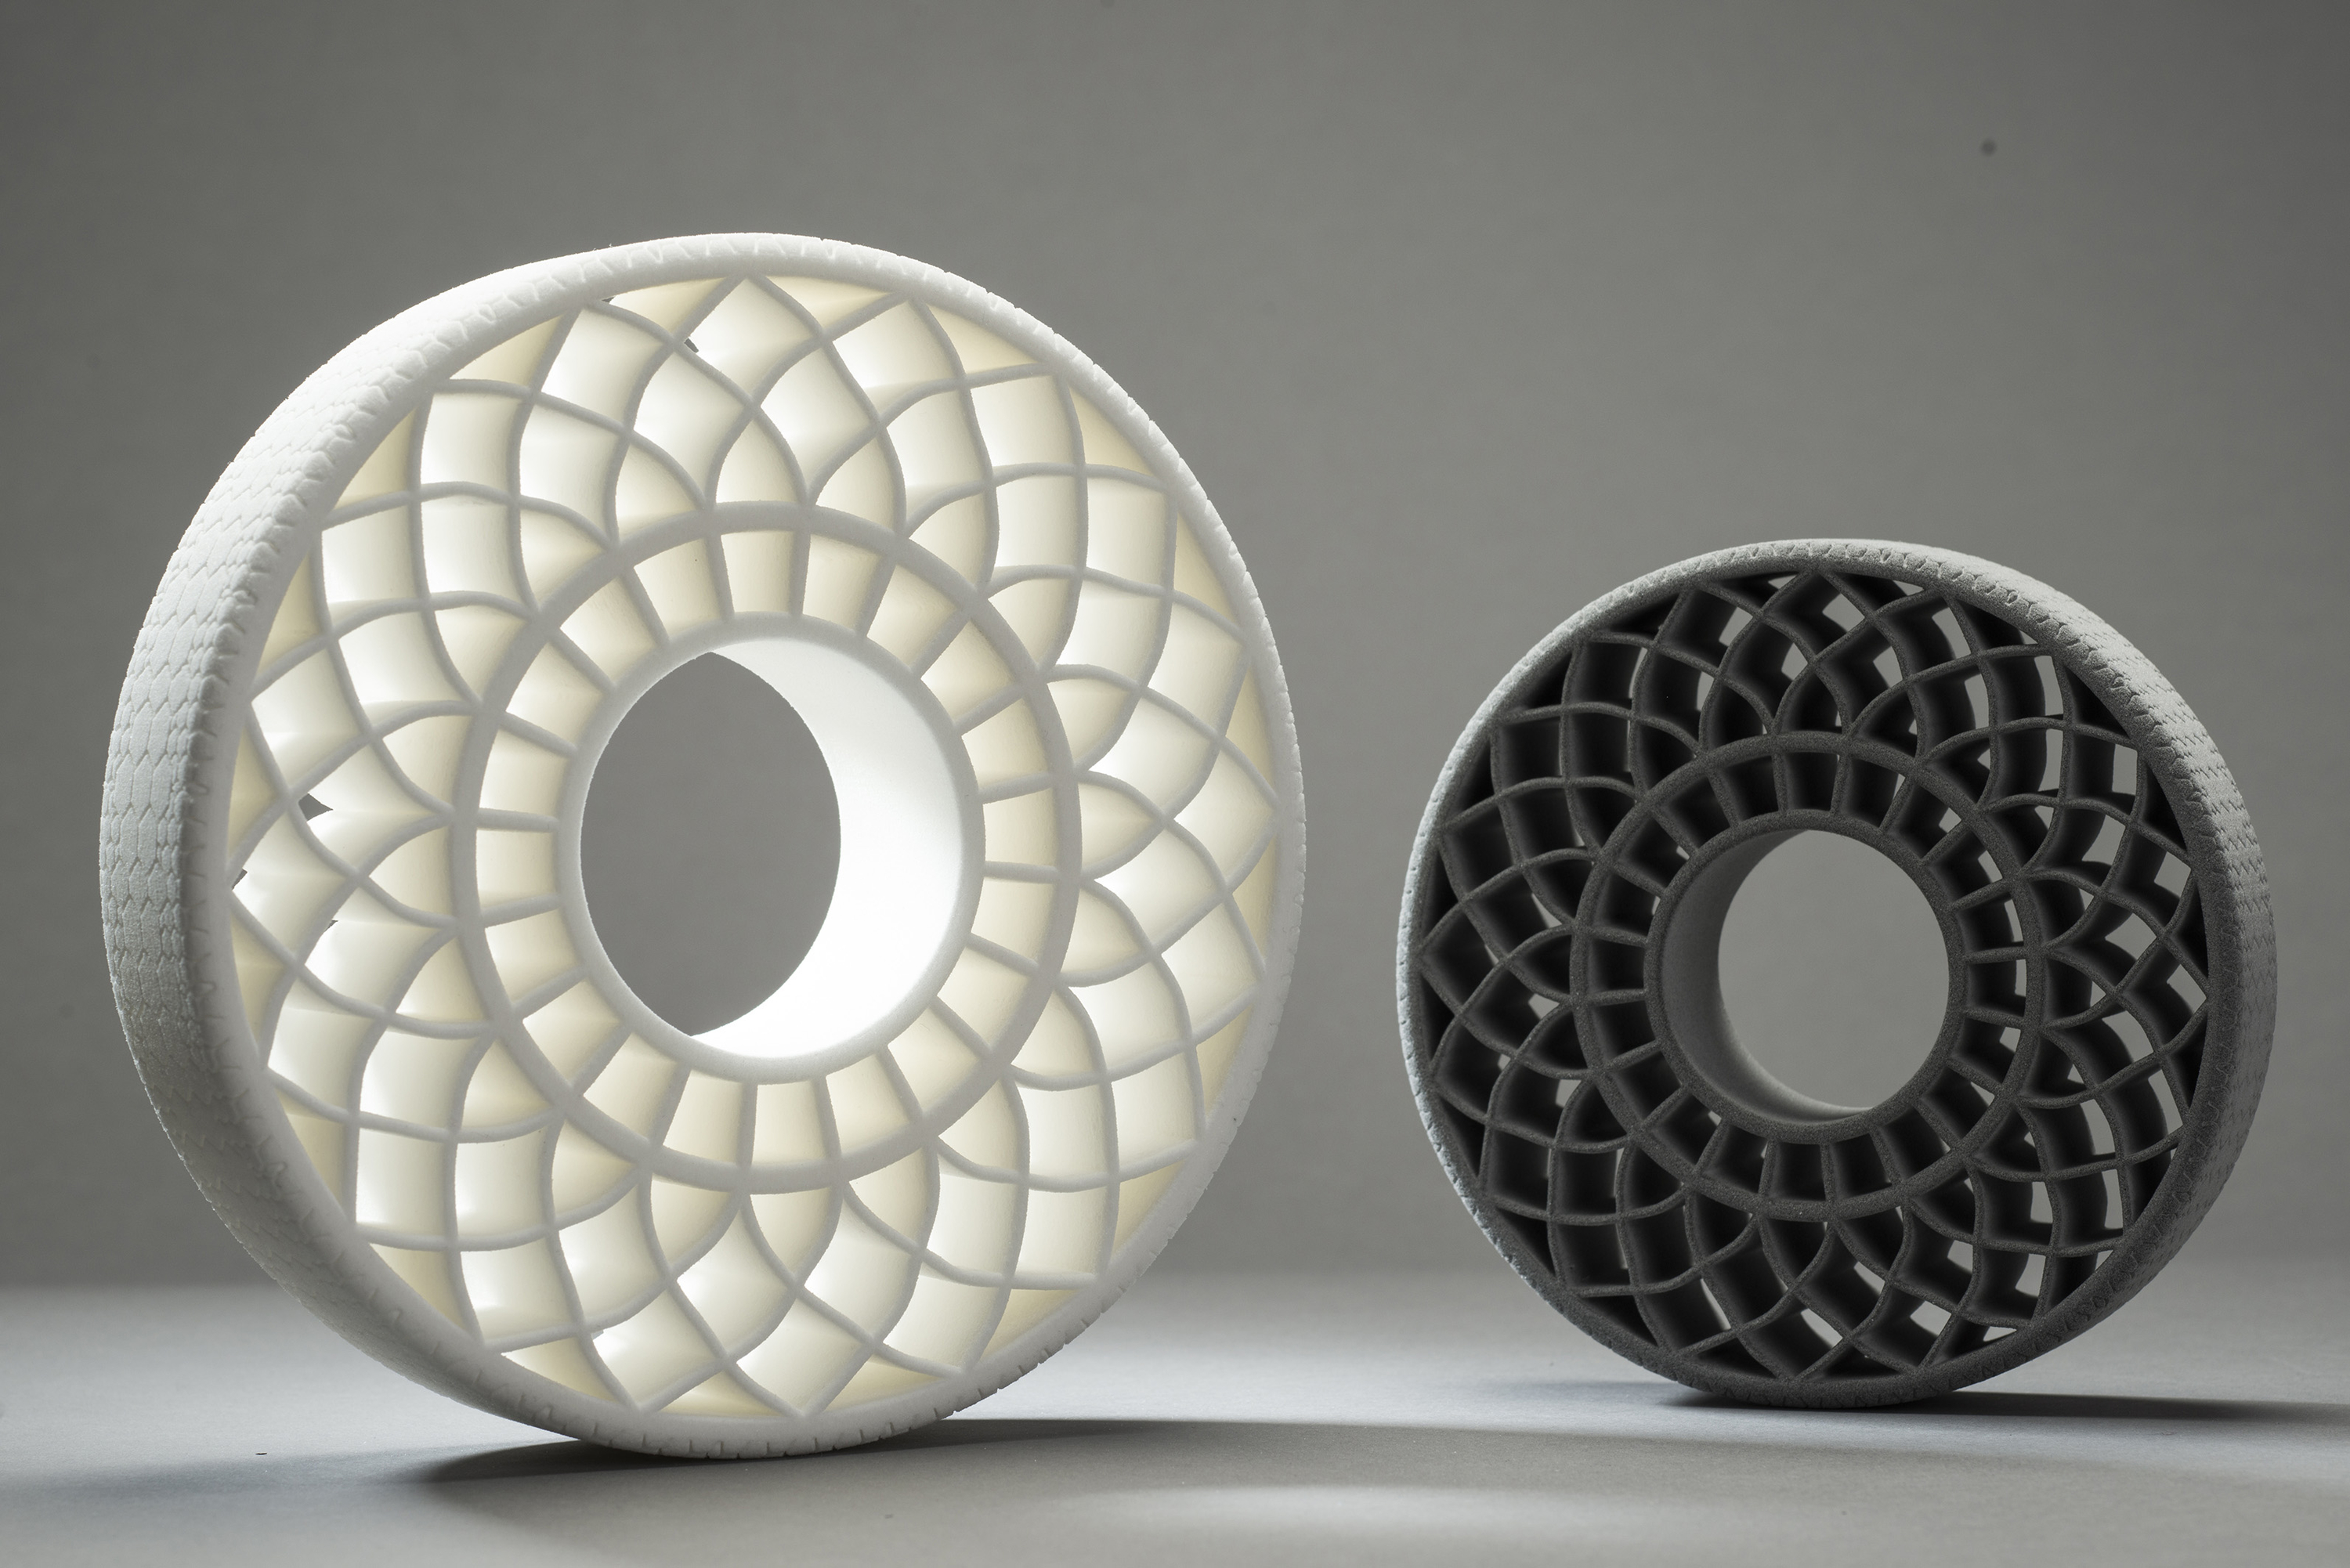 BASF-strengthens-3D-printing-business-with-two-acquisitions